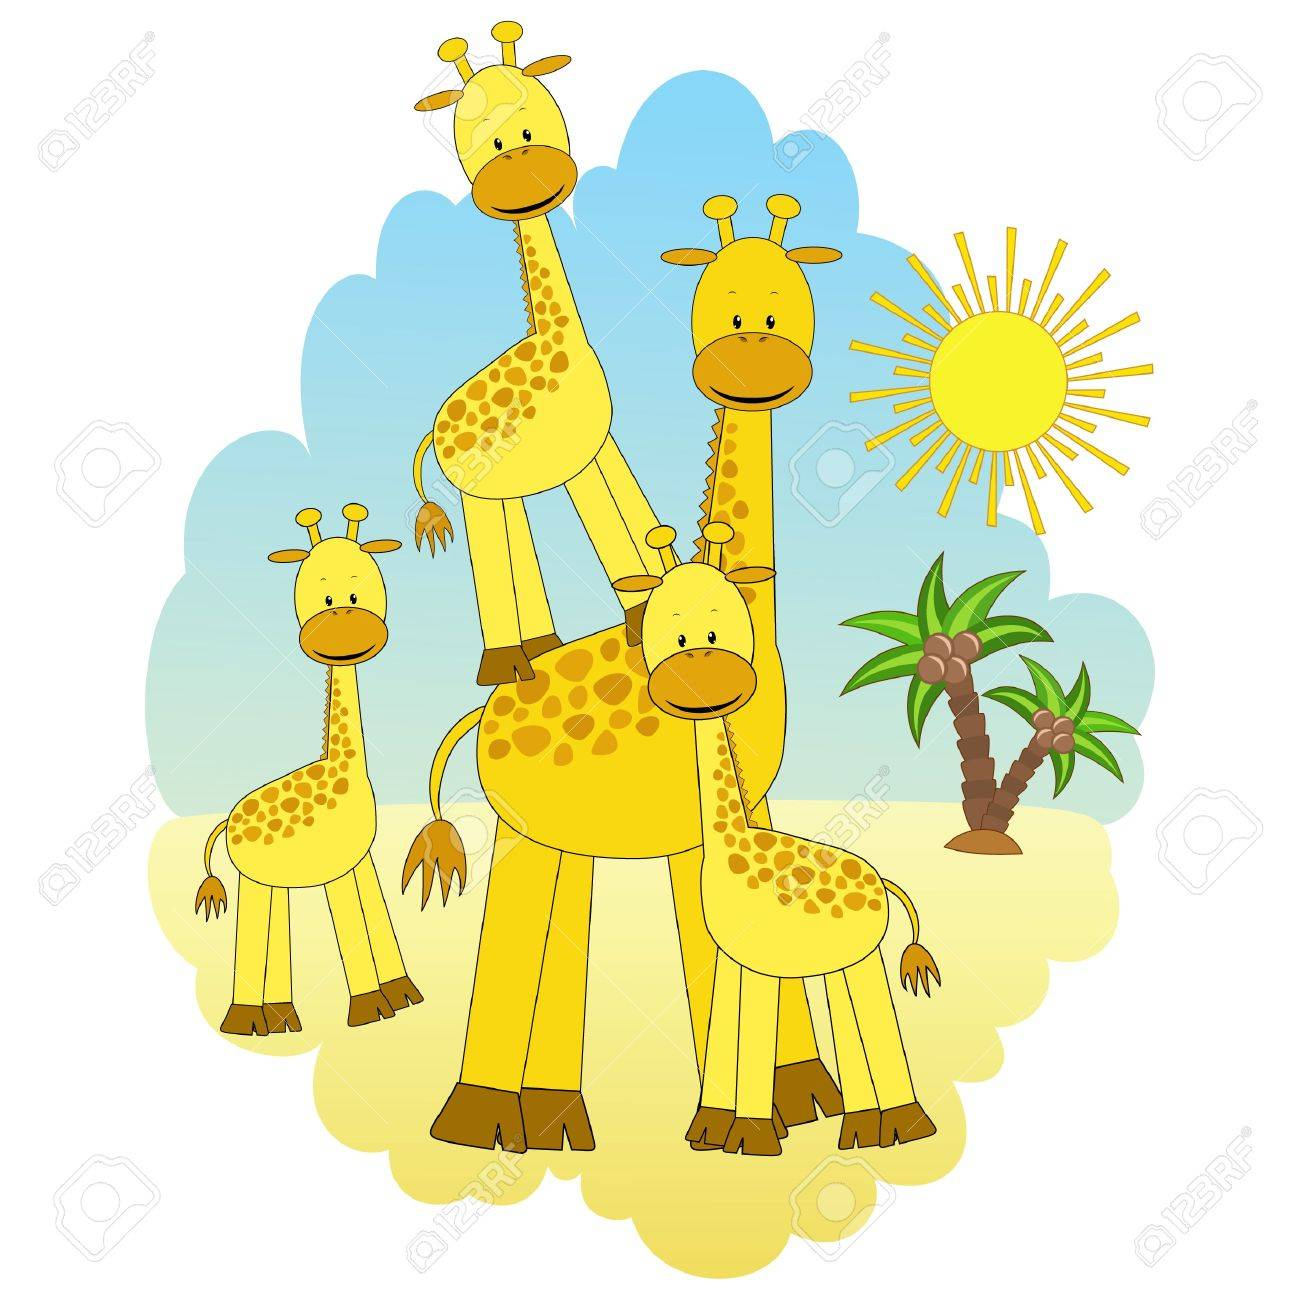 mother giraffe and baby giraffes royalty free cliparts vectors